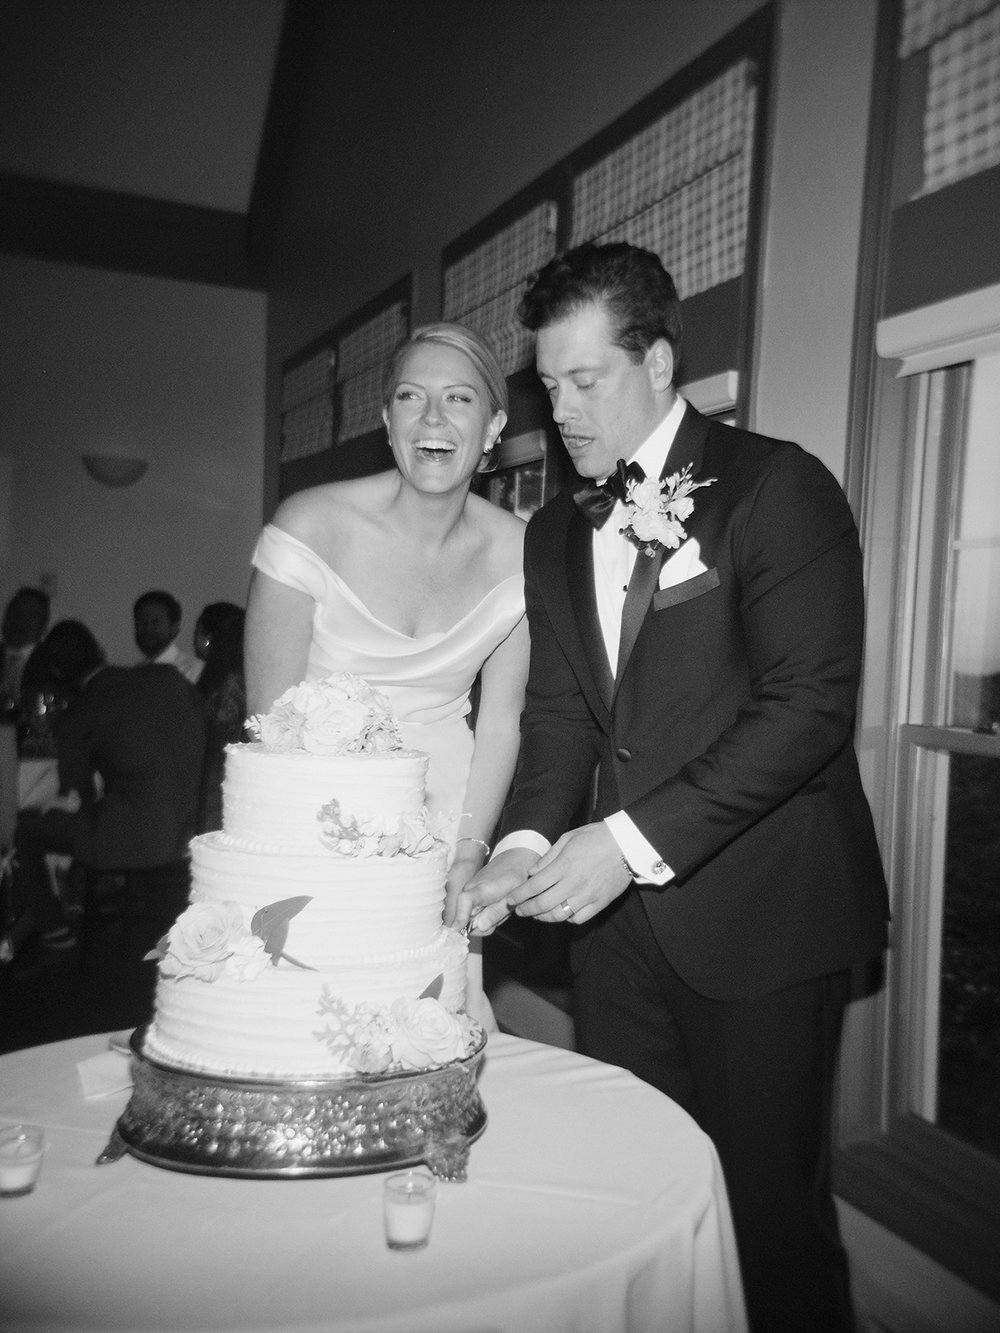 cake cutting captured on black and white film holga